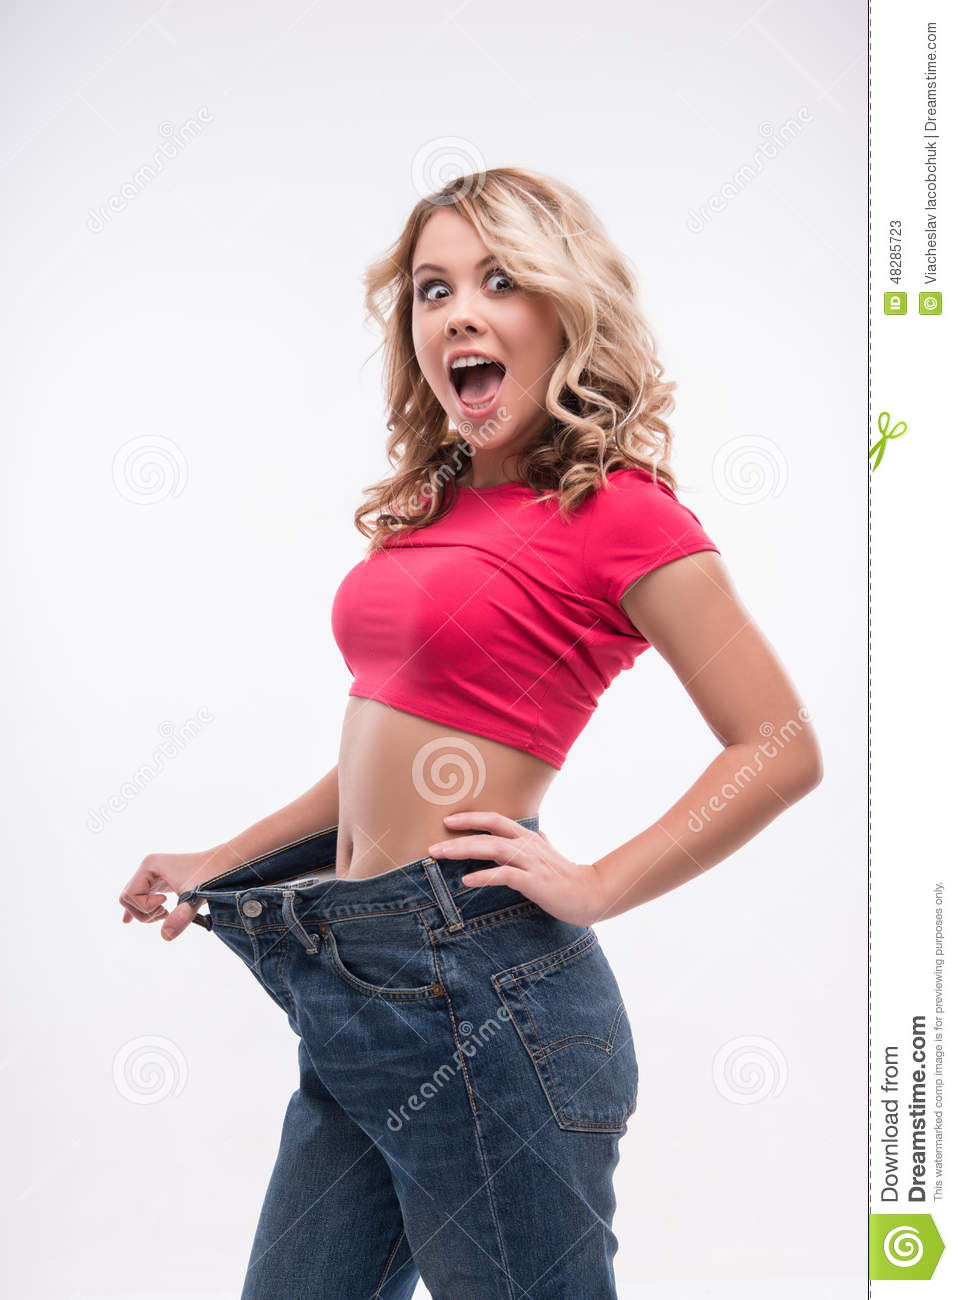 Slim Waist Of Young Woman In Big Jeans Showing Stock Photo